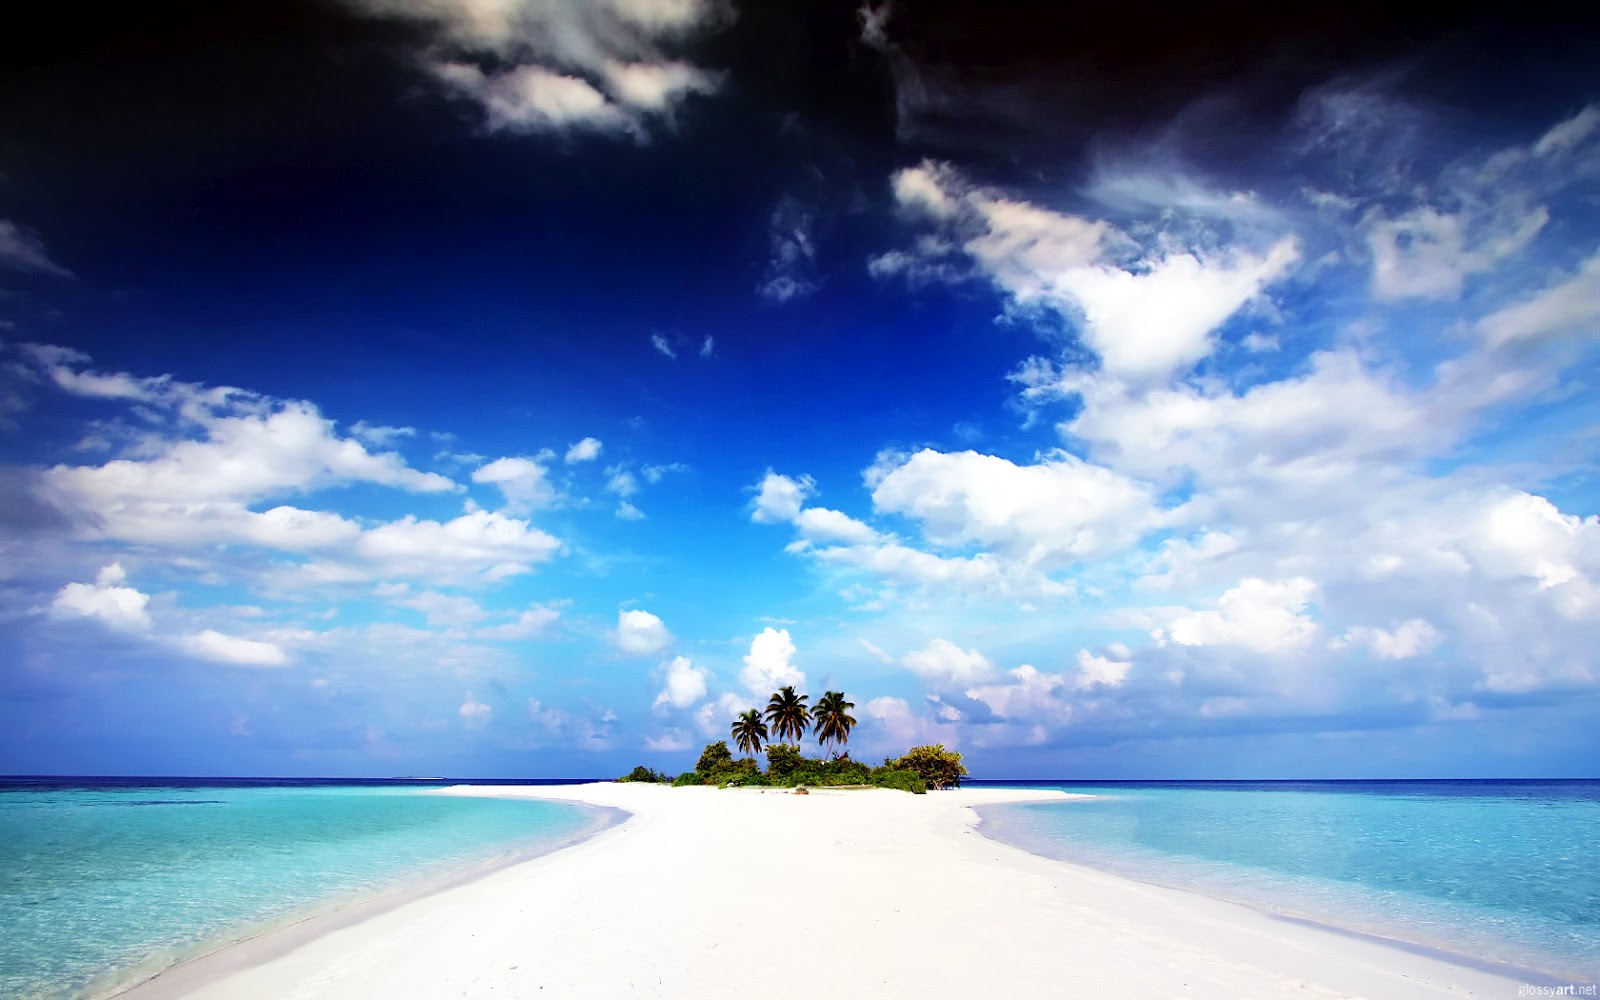 Paradise place wallpapers and images - wallpapers